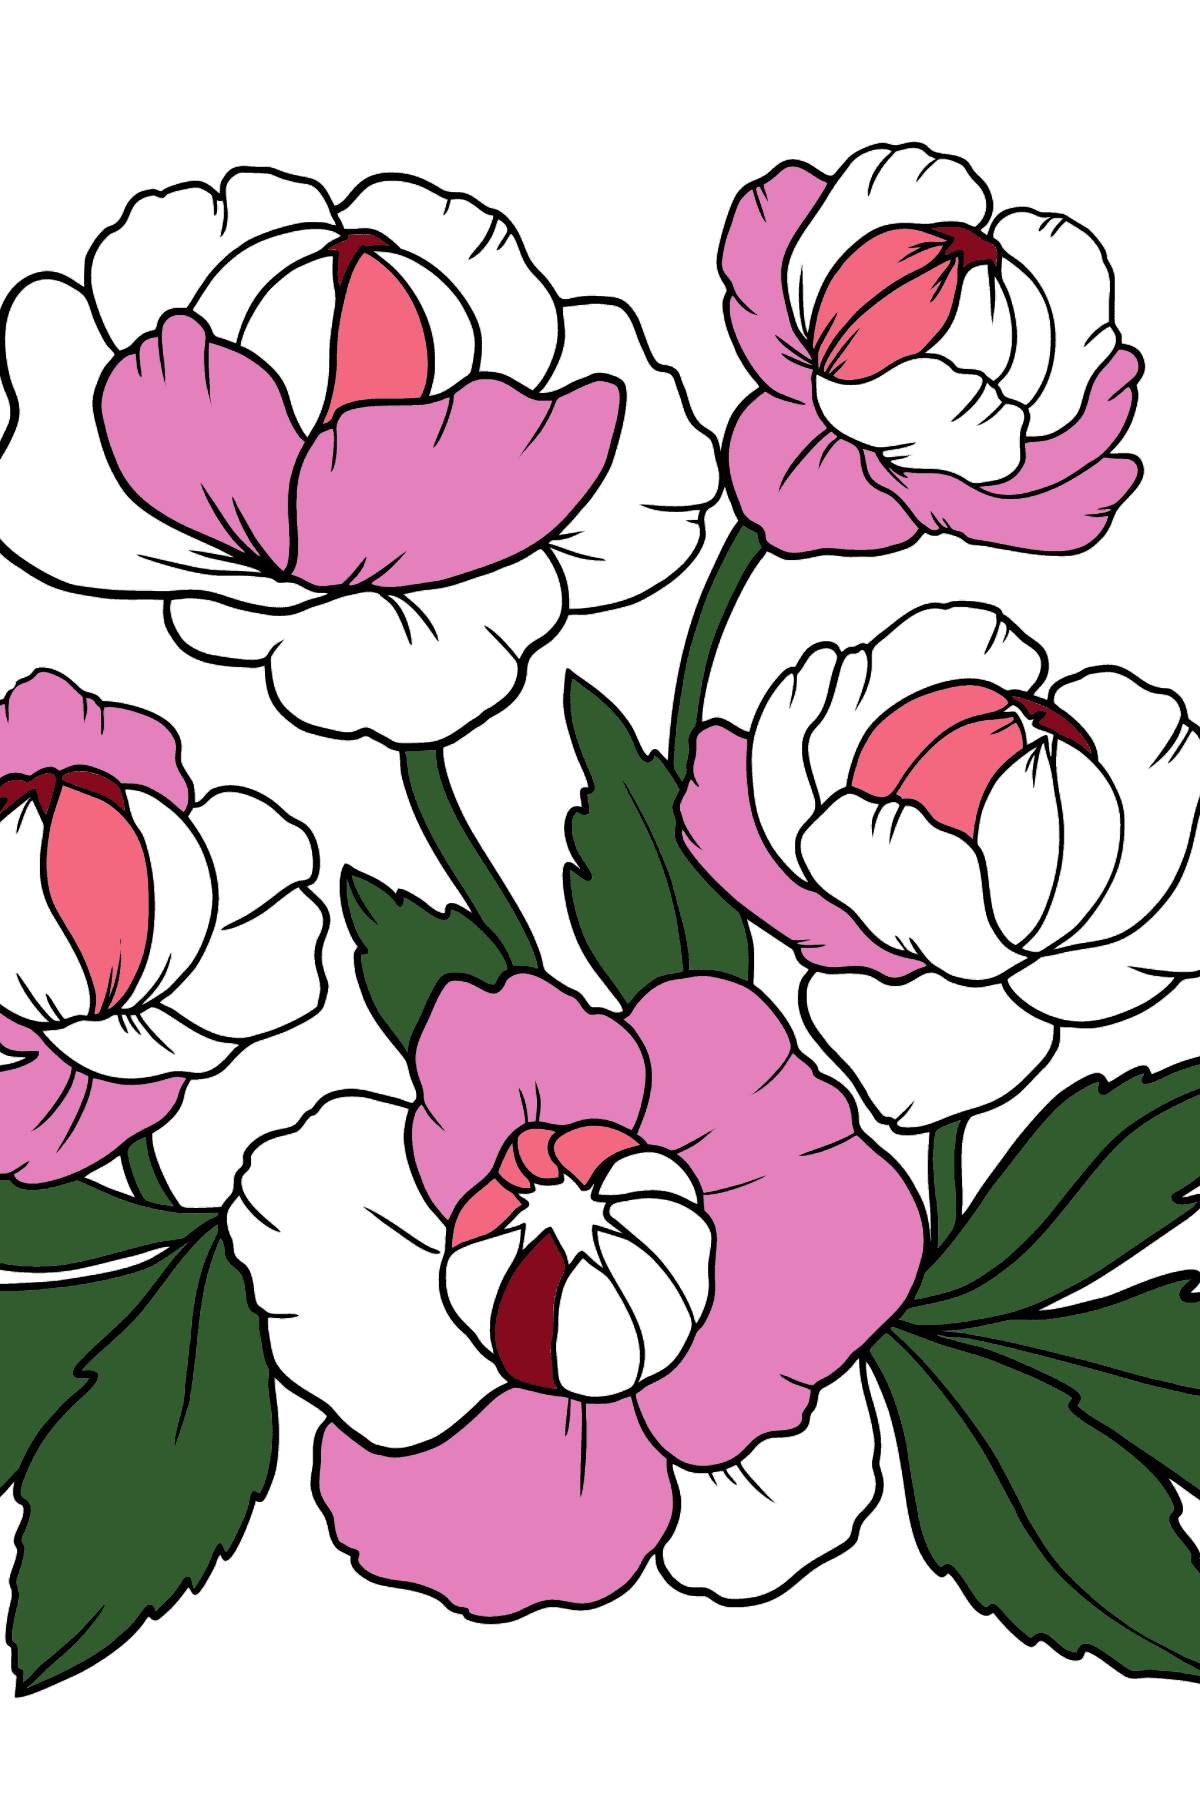 Beautiful Flower Coloring Page - A Red and Pink Globeflower - Coloring Pages for Kids